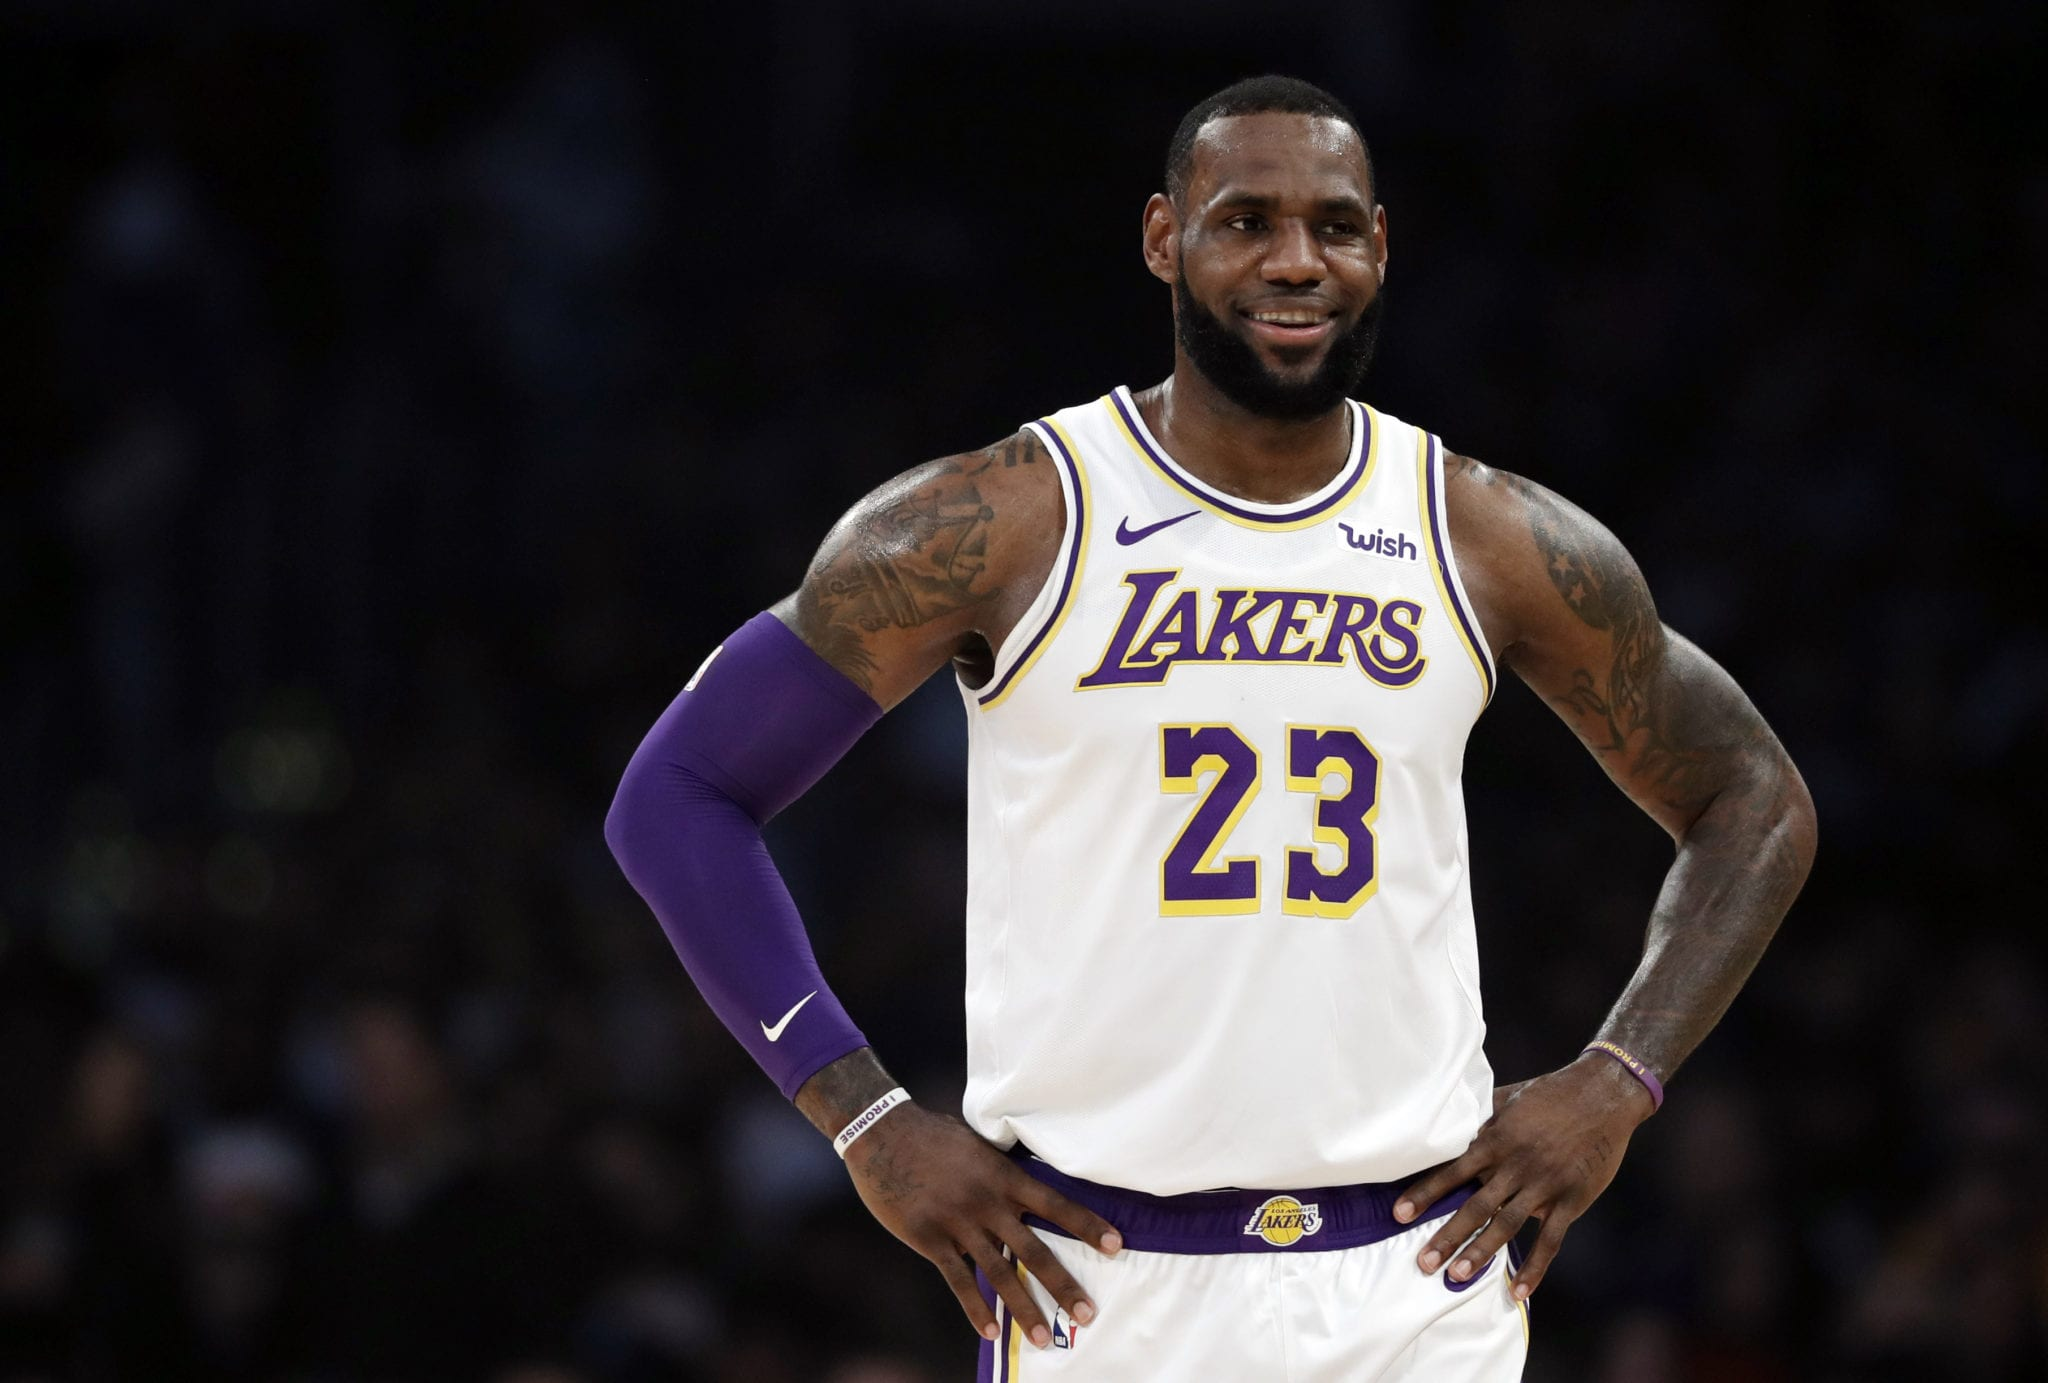 Lebron James Takes the High Road Against Donald Trump